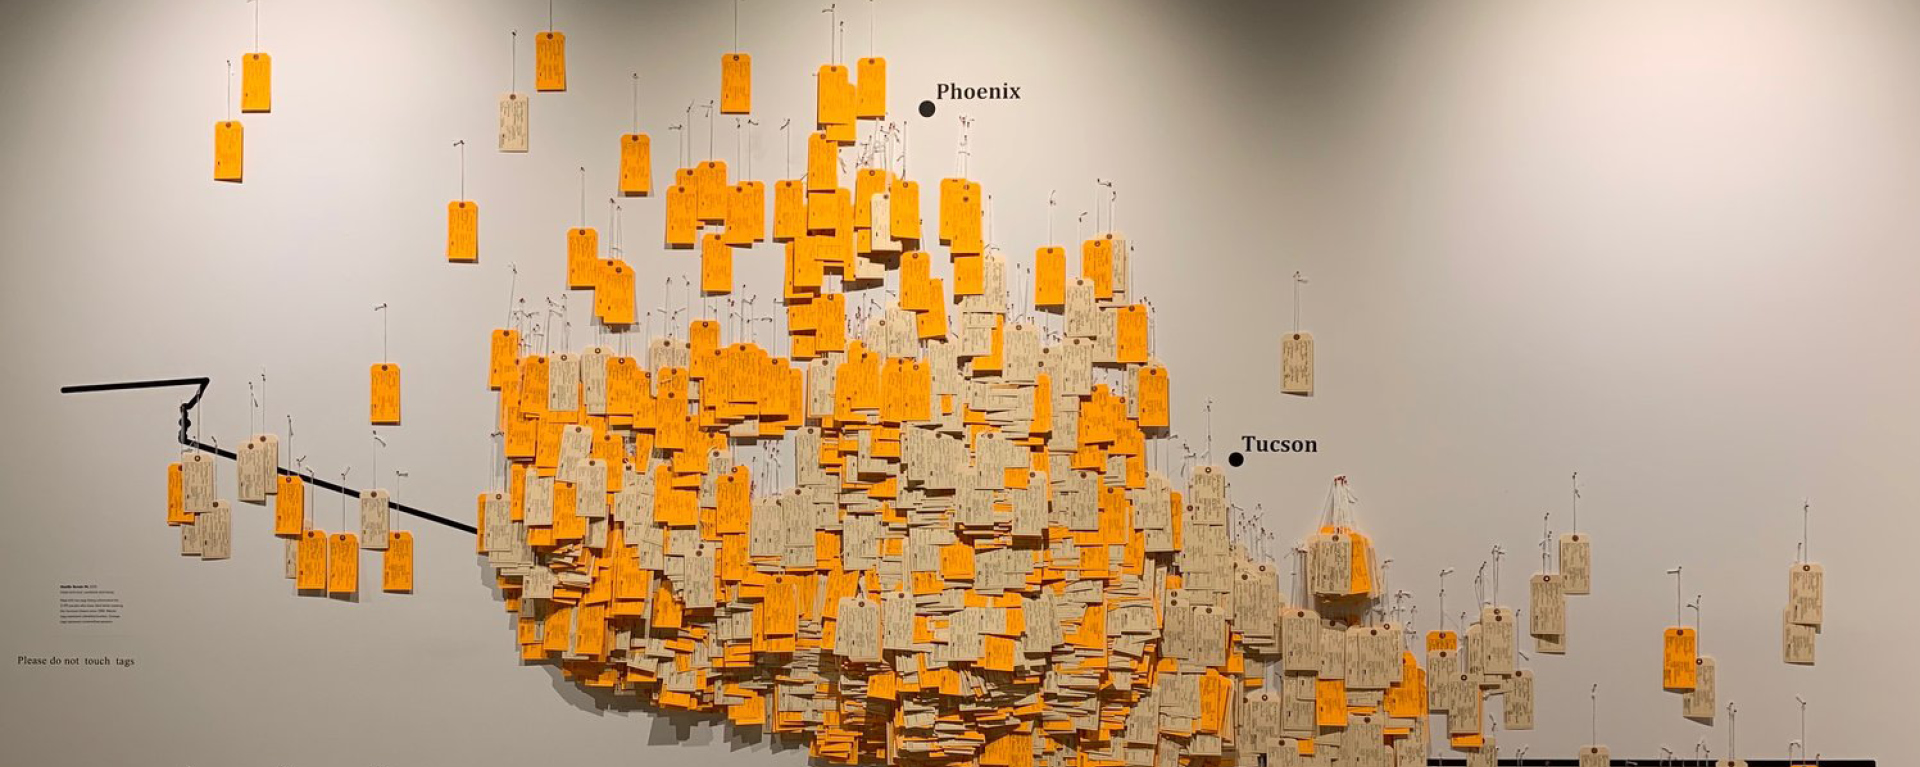 This image of the exhibit shows some of the nearly 4,000 handwritten toe tags representing migrants who have died trying to cross the southern U.S. border between 1994 and 2019. These tags are geolocated on a wall map of the desert showing the exact locations where remains were found.